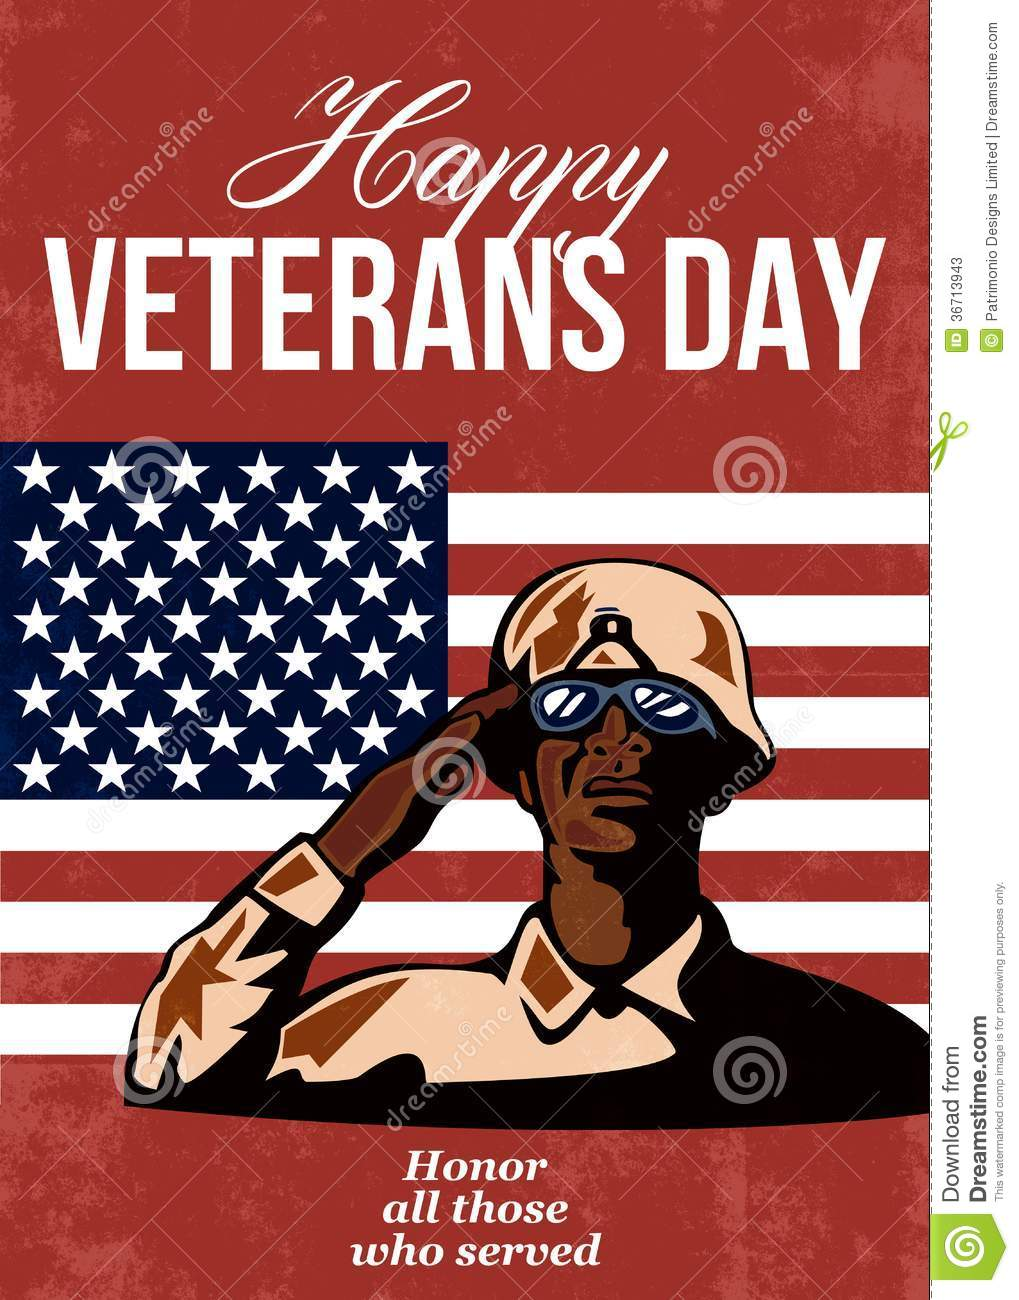 Veterans Day Greeting Card American Stock Photos - Image: 36713943